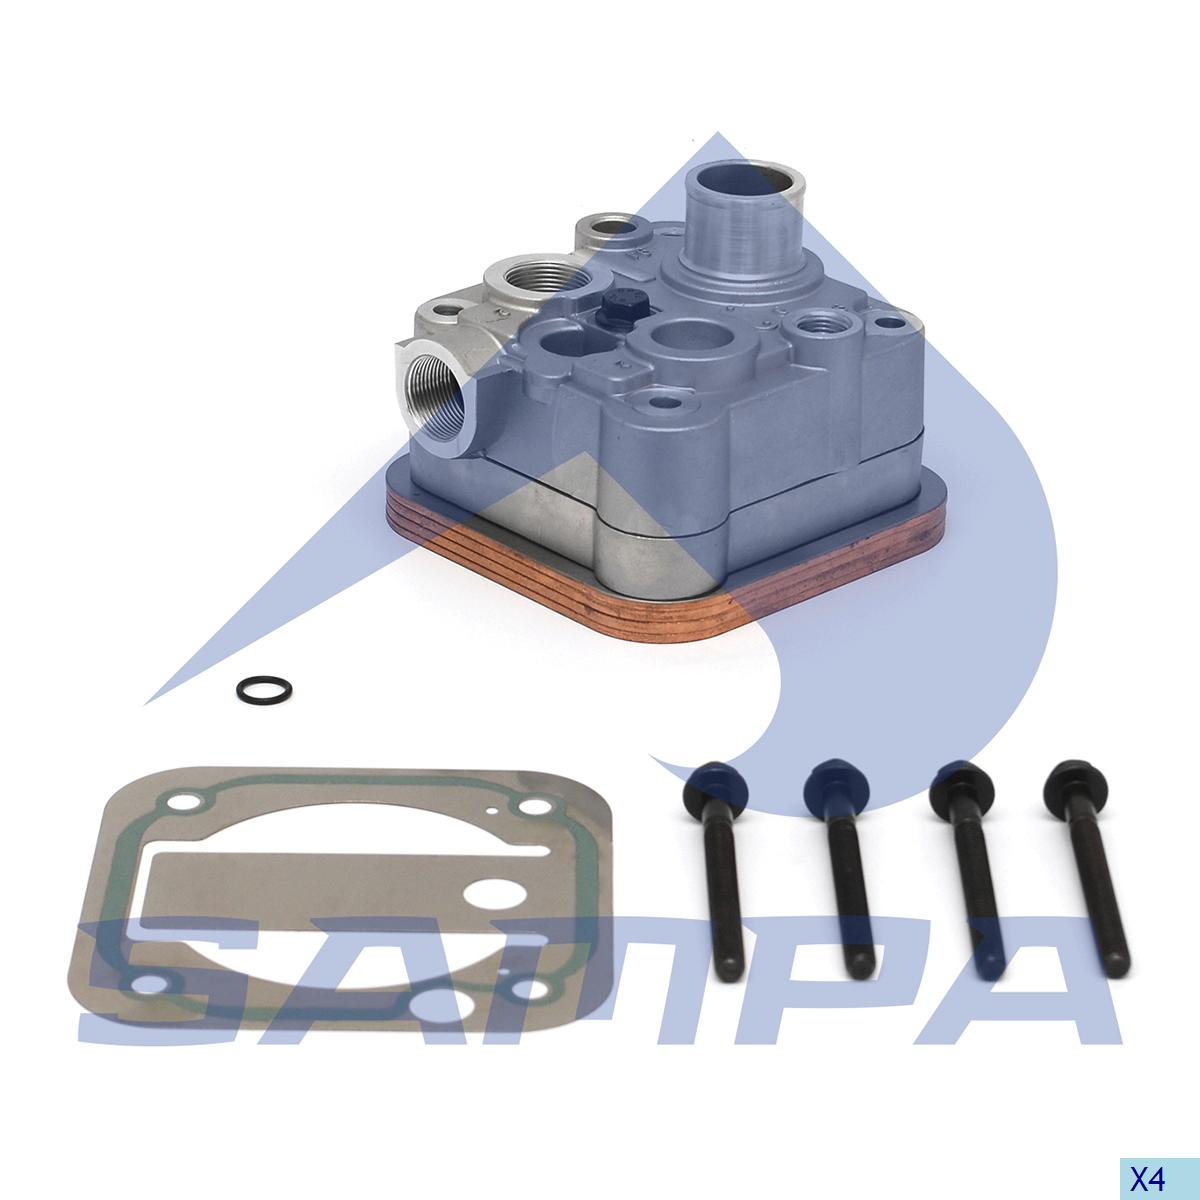 Cylinder Head, Man, Compressed Air System